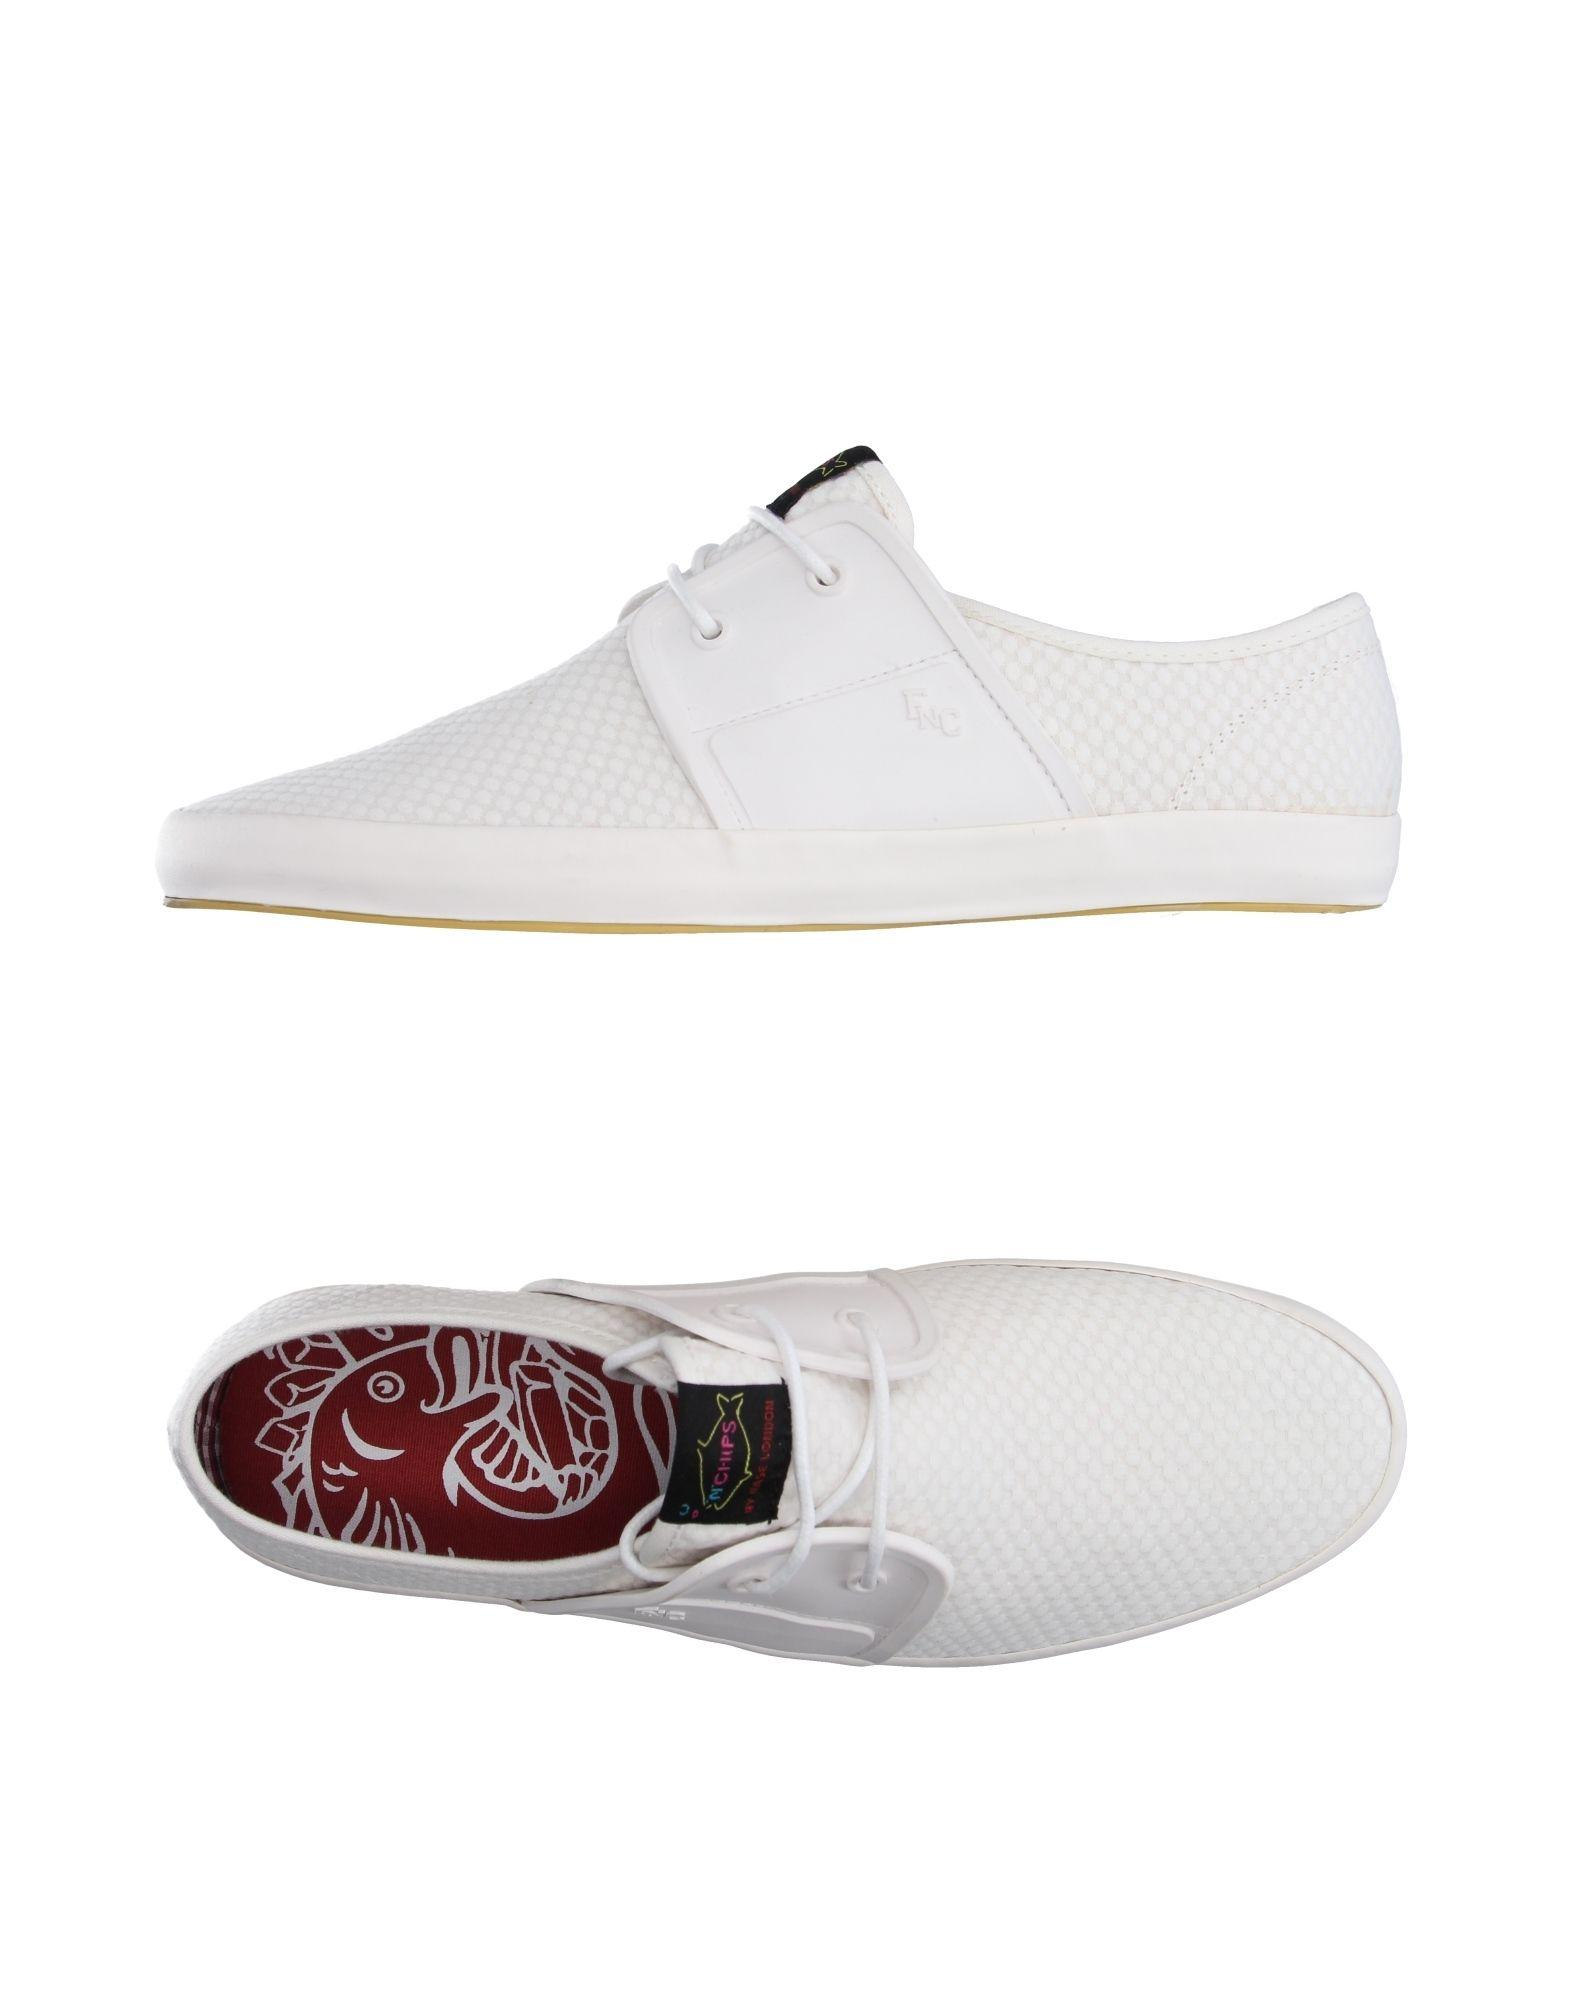 Fish n chips low tops sneakers in white for men lyst for White fishing boots